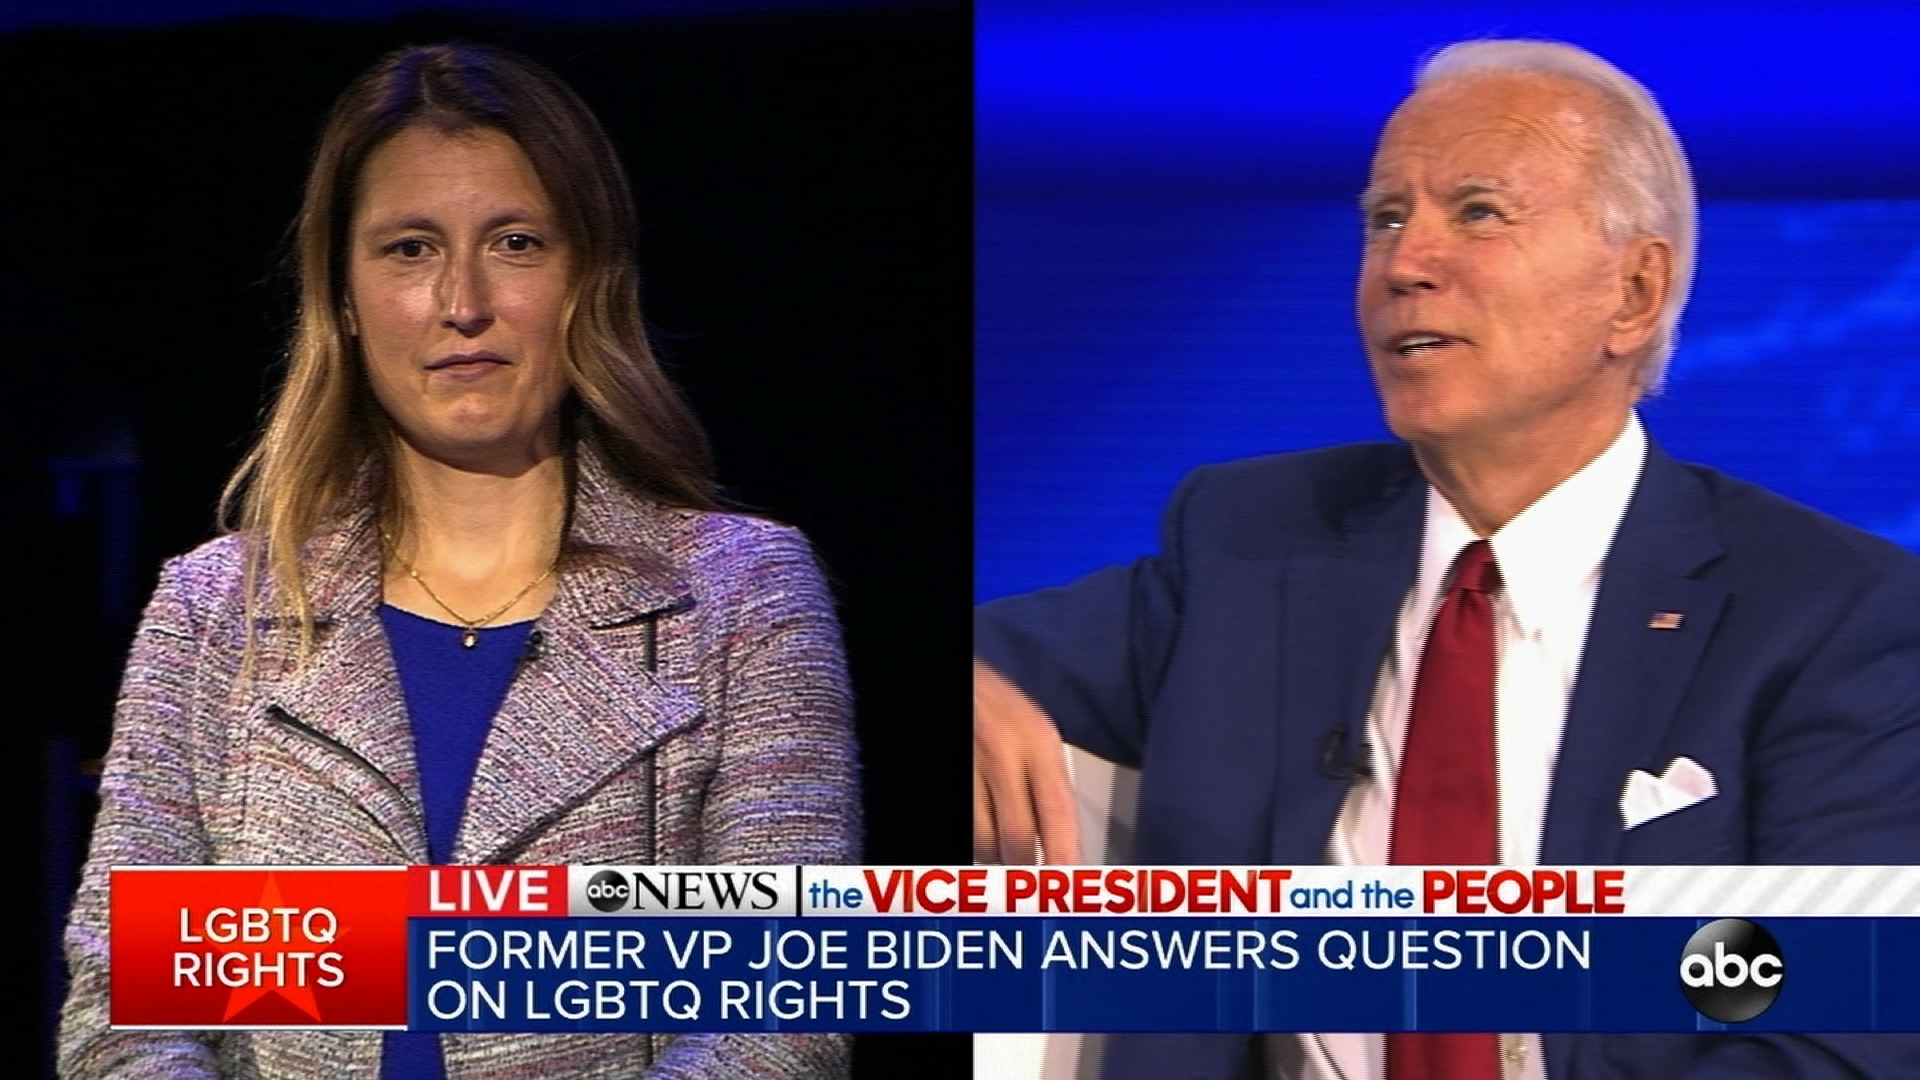 Democratic presidential candidate Joe Biden answers a question from a guest.